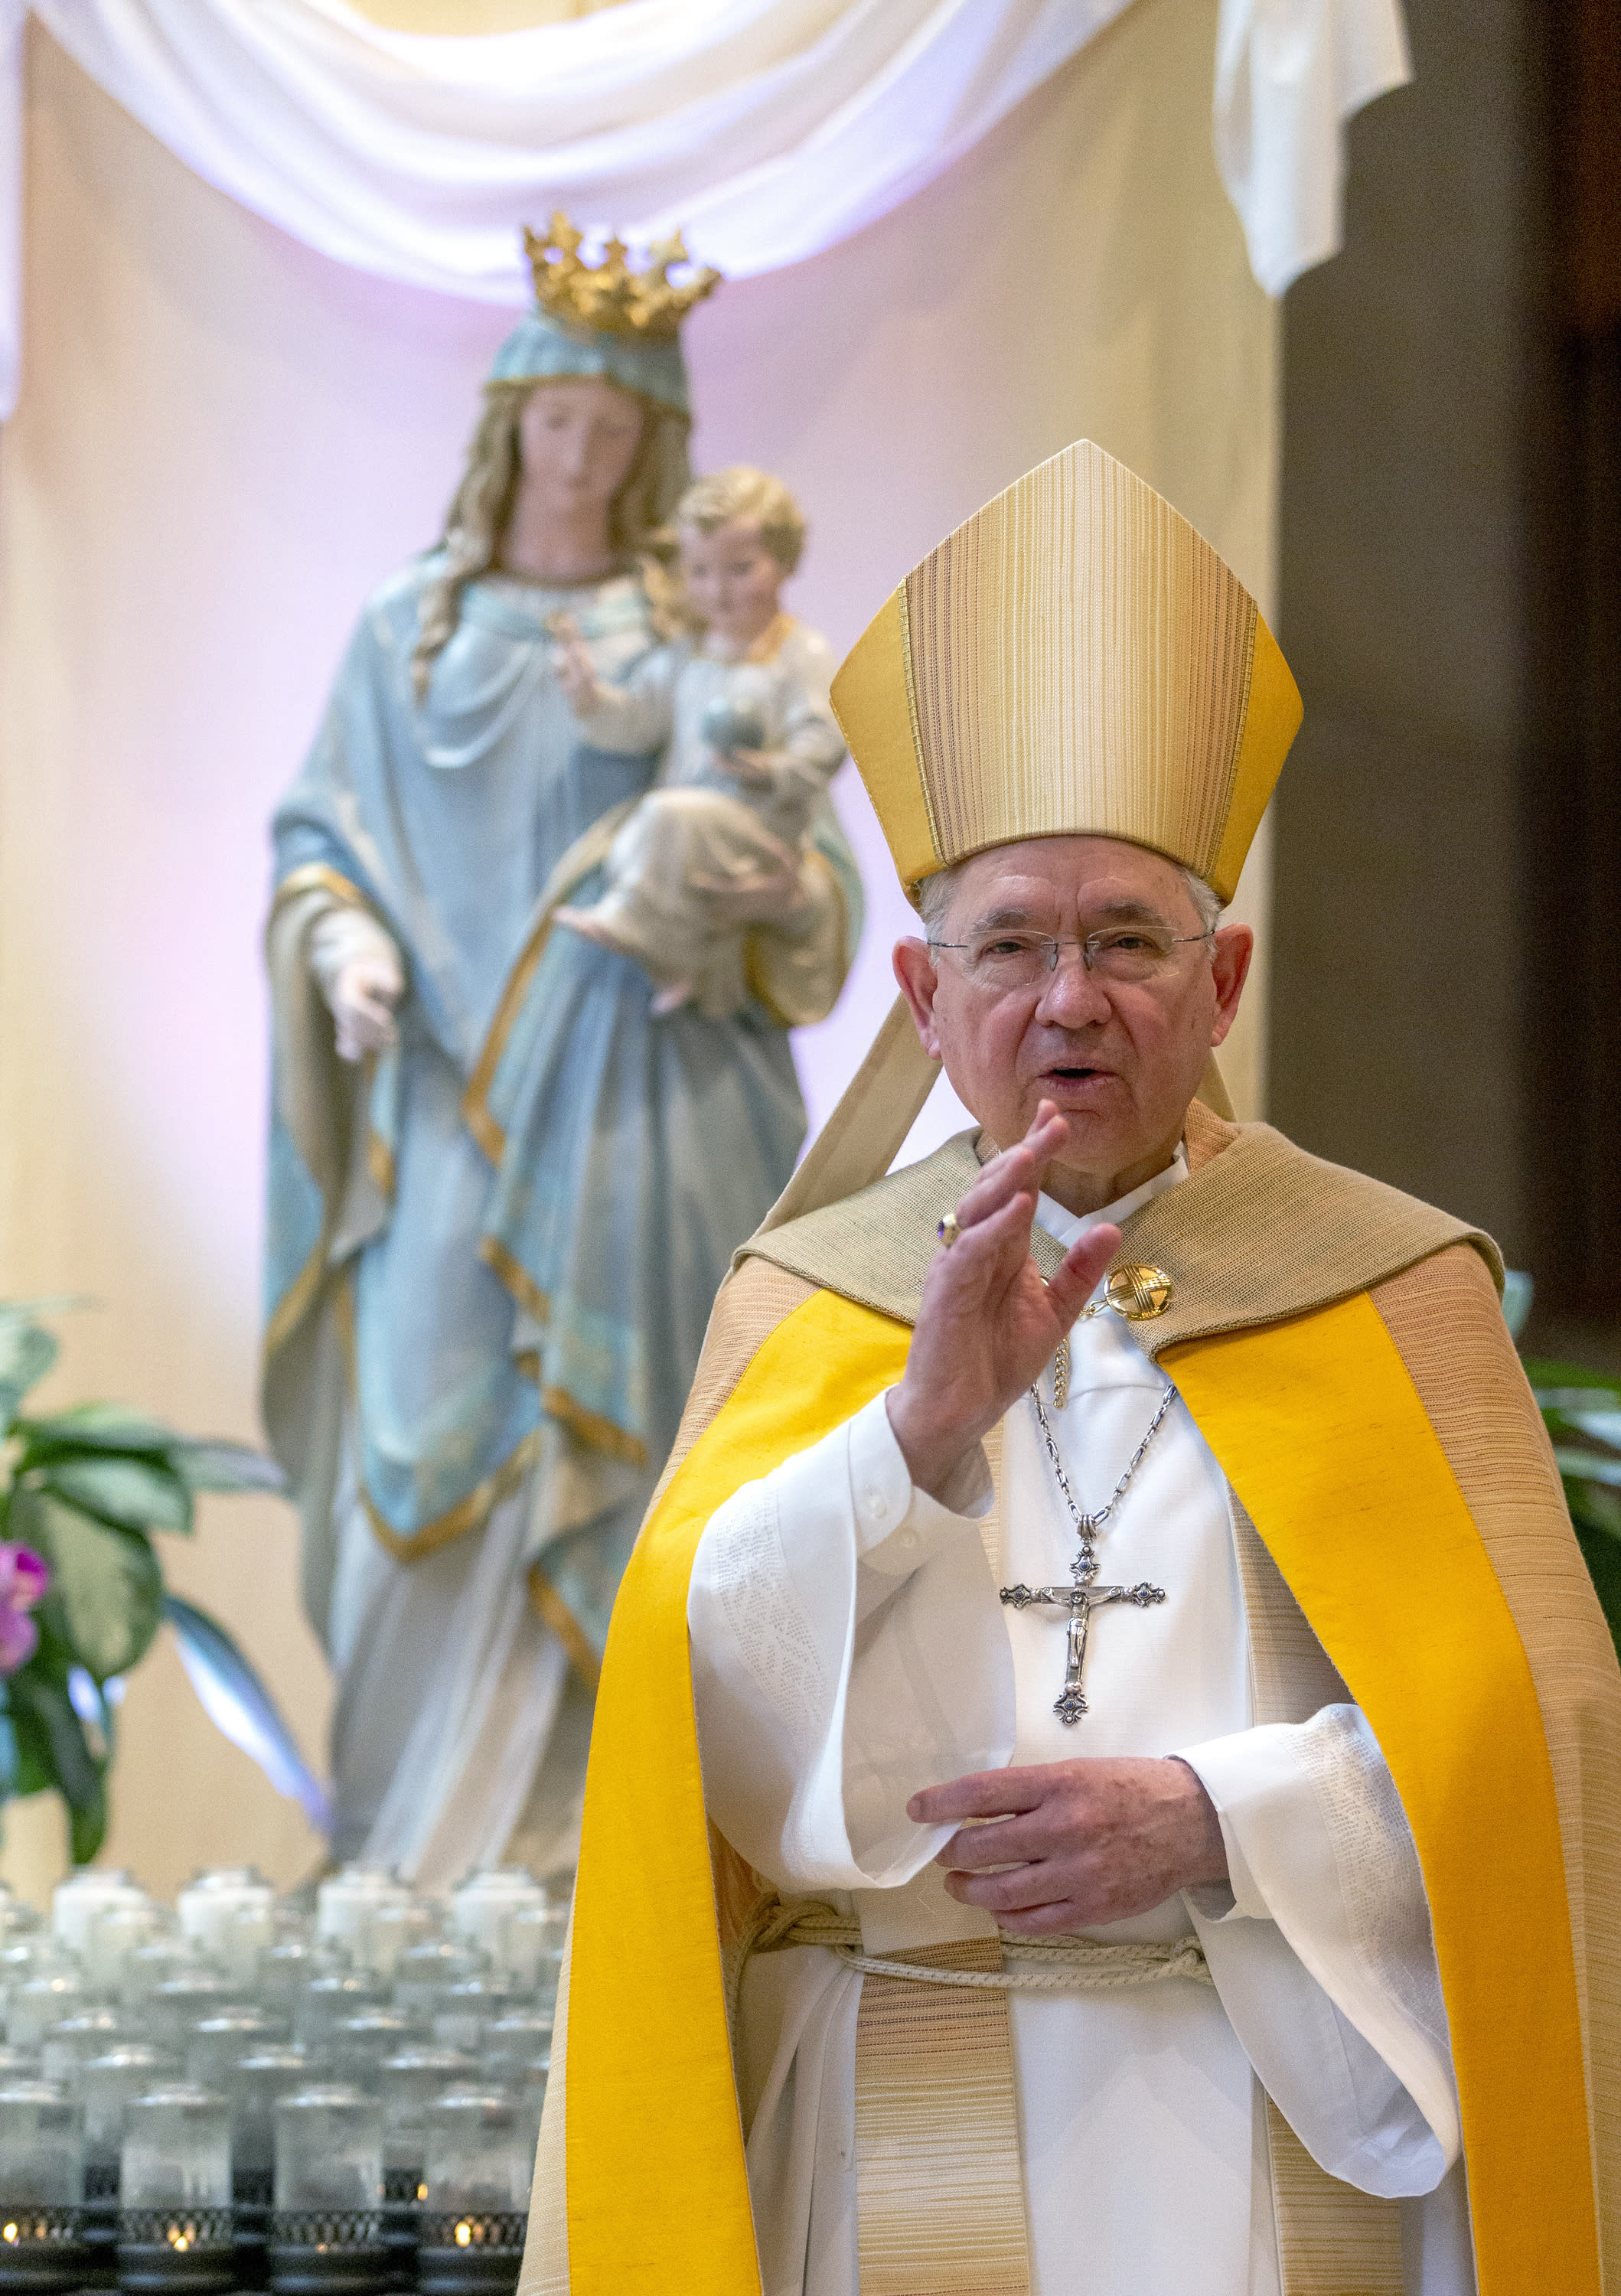 """FILE - In this Friday, May 1, 2020 file photo, Archbishop Jose H. Gomez gives a blessing after leading a brief liturgy at the Cathedral of Our Lady of the Angels in Los Angeles. Gomez heads the U.S. Conference of Catholic Bishops, which paid $20,000 to lobby the U.S. Senate and House on """"eligibility for non-profits"""" in a landmark coronavirus relief law. (AP Photo/Damian Dovarganes, Pool)"""